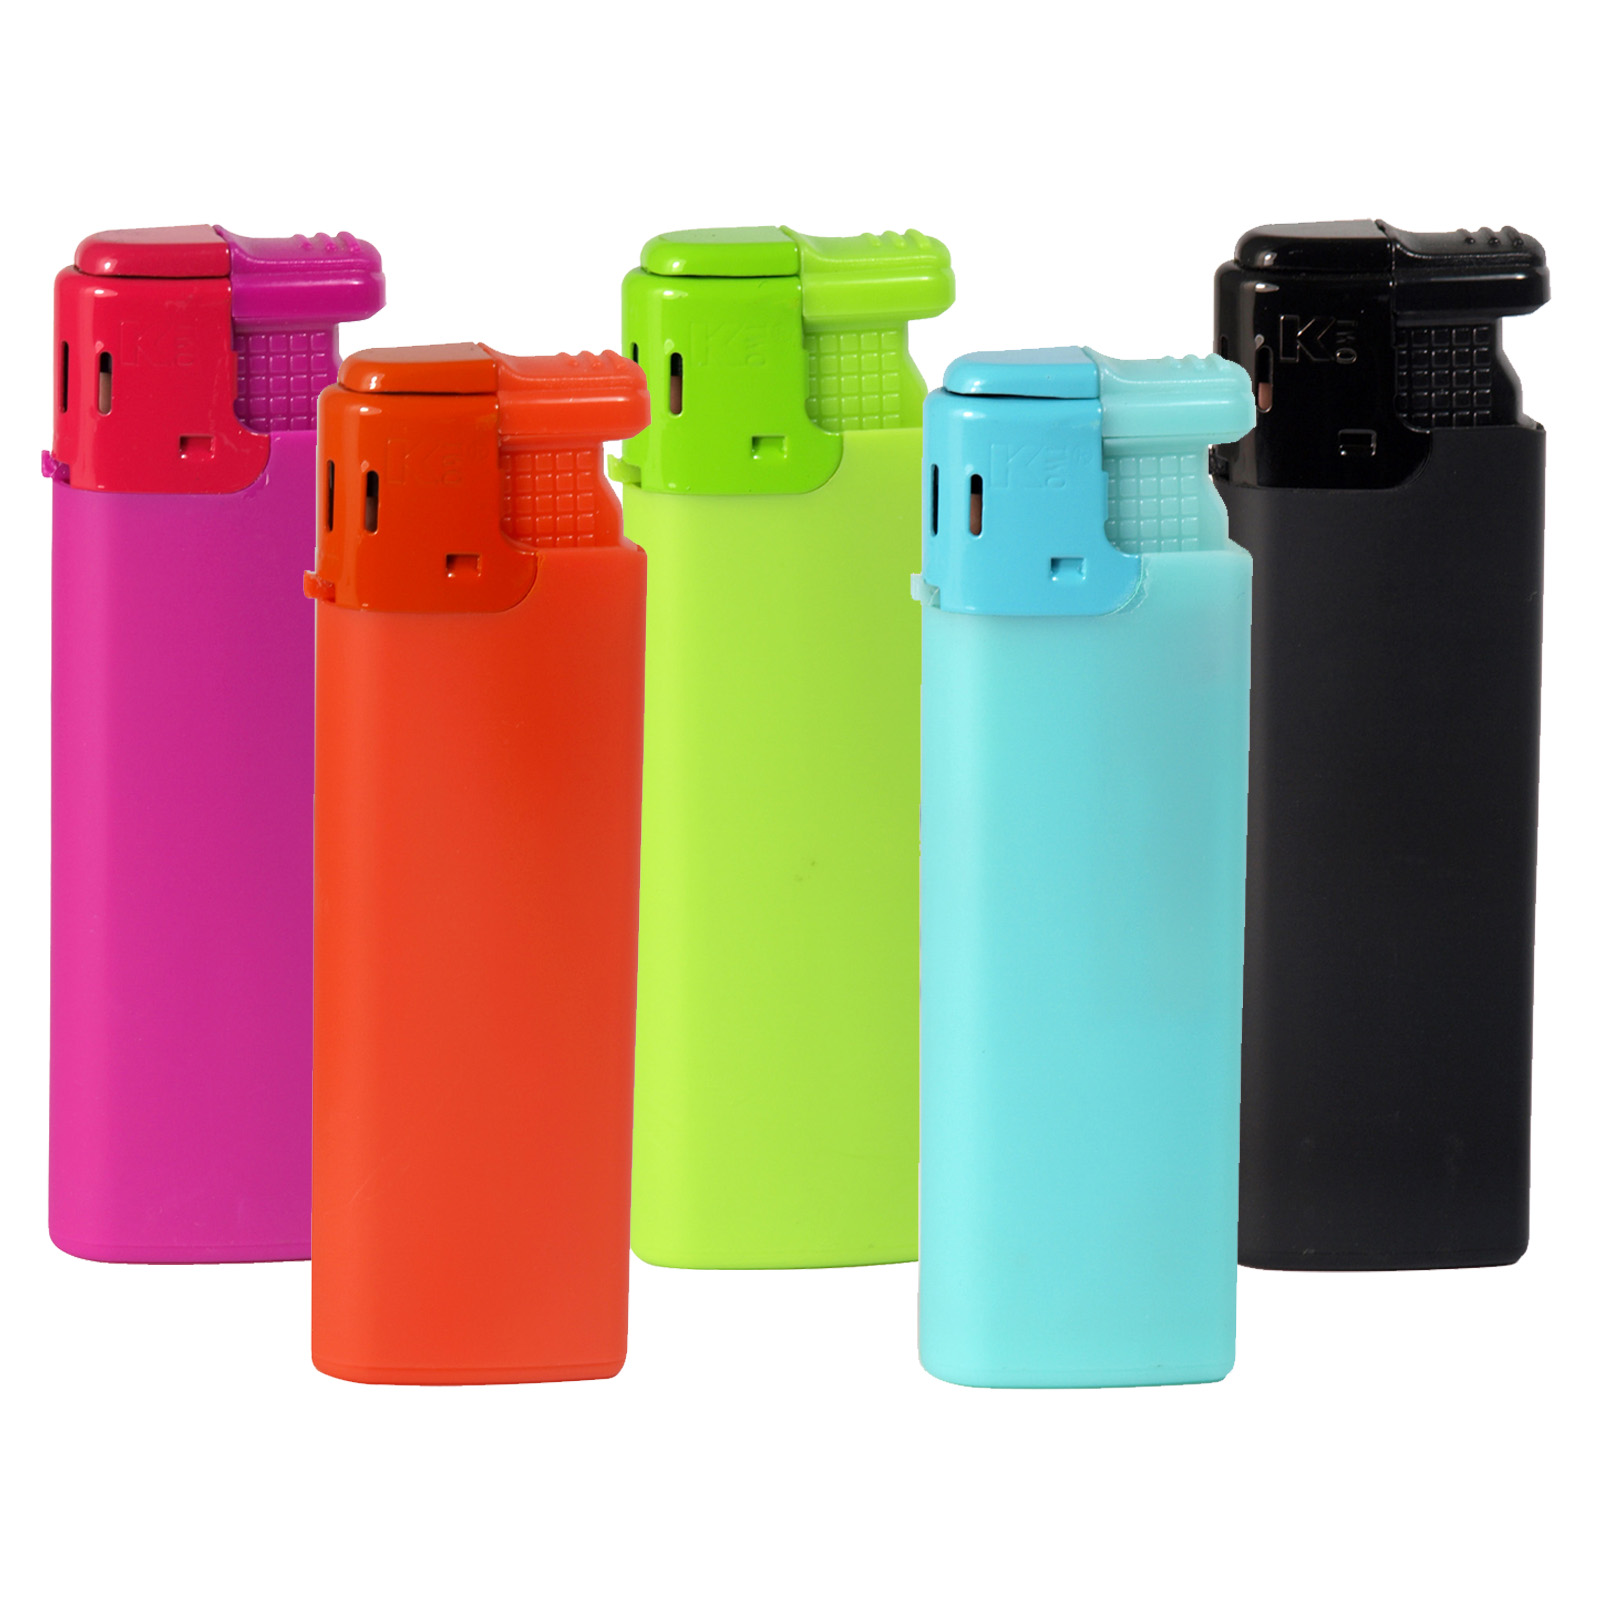 KTWO SOFT TOUCH WINDPROOF LIGHTERS X20